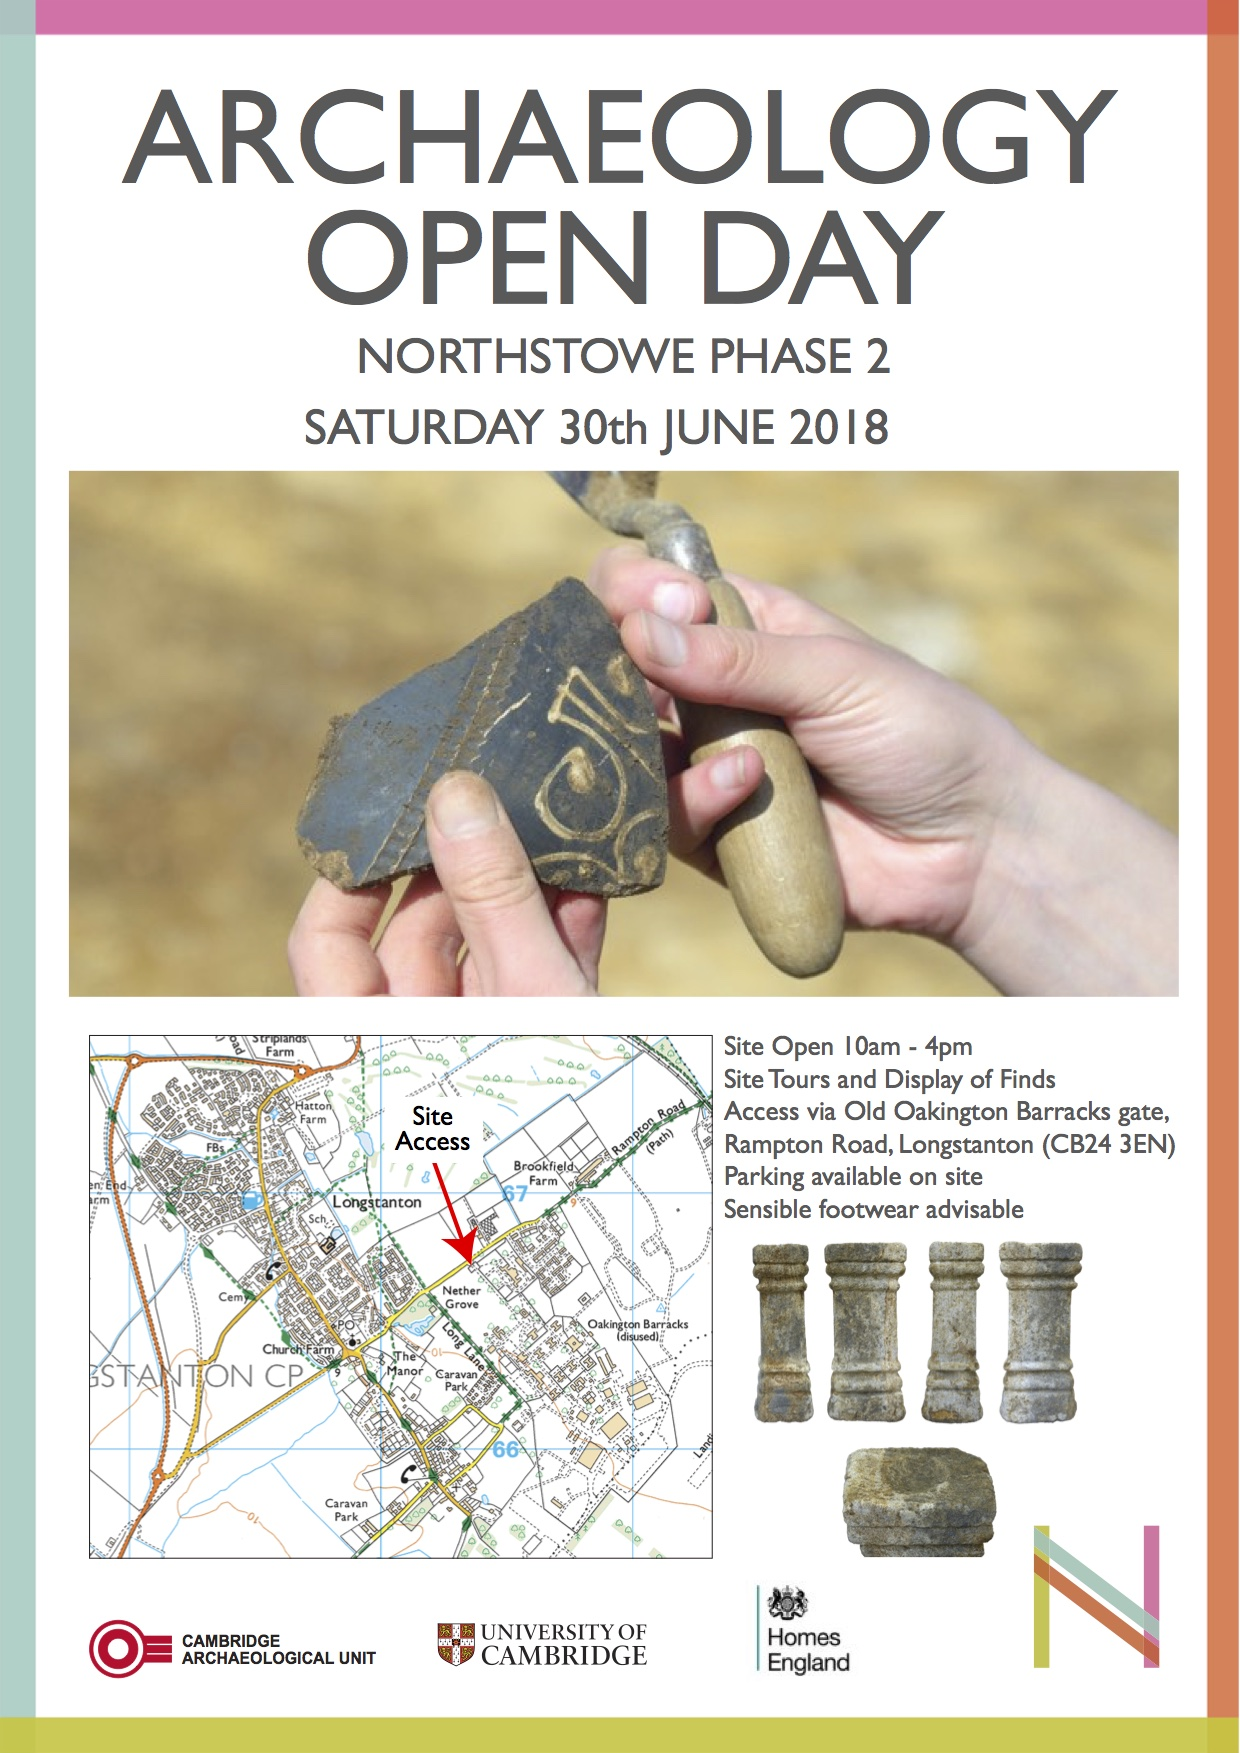 Northstowe_Archaeology Open Day Flyer 2018.jpg